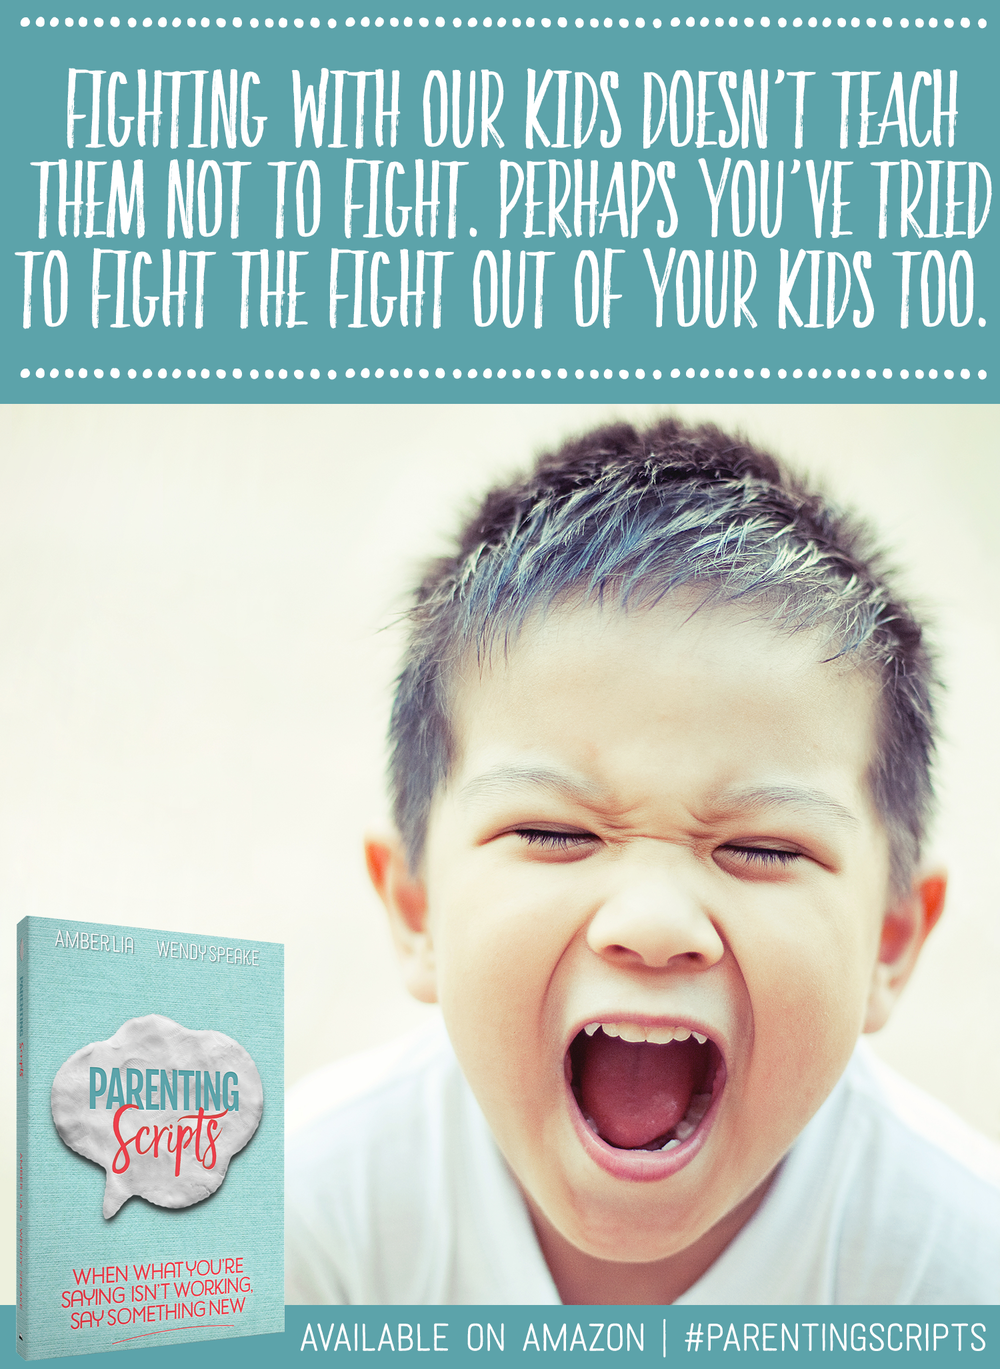 When what you're saying to your kids isn't working, say something new! Purchase your copy of Parenting Scripts today! | http://bit.ly/parenting-scripts